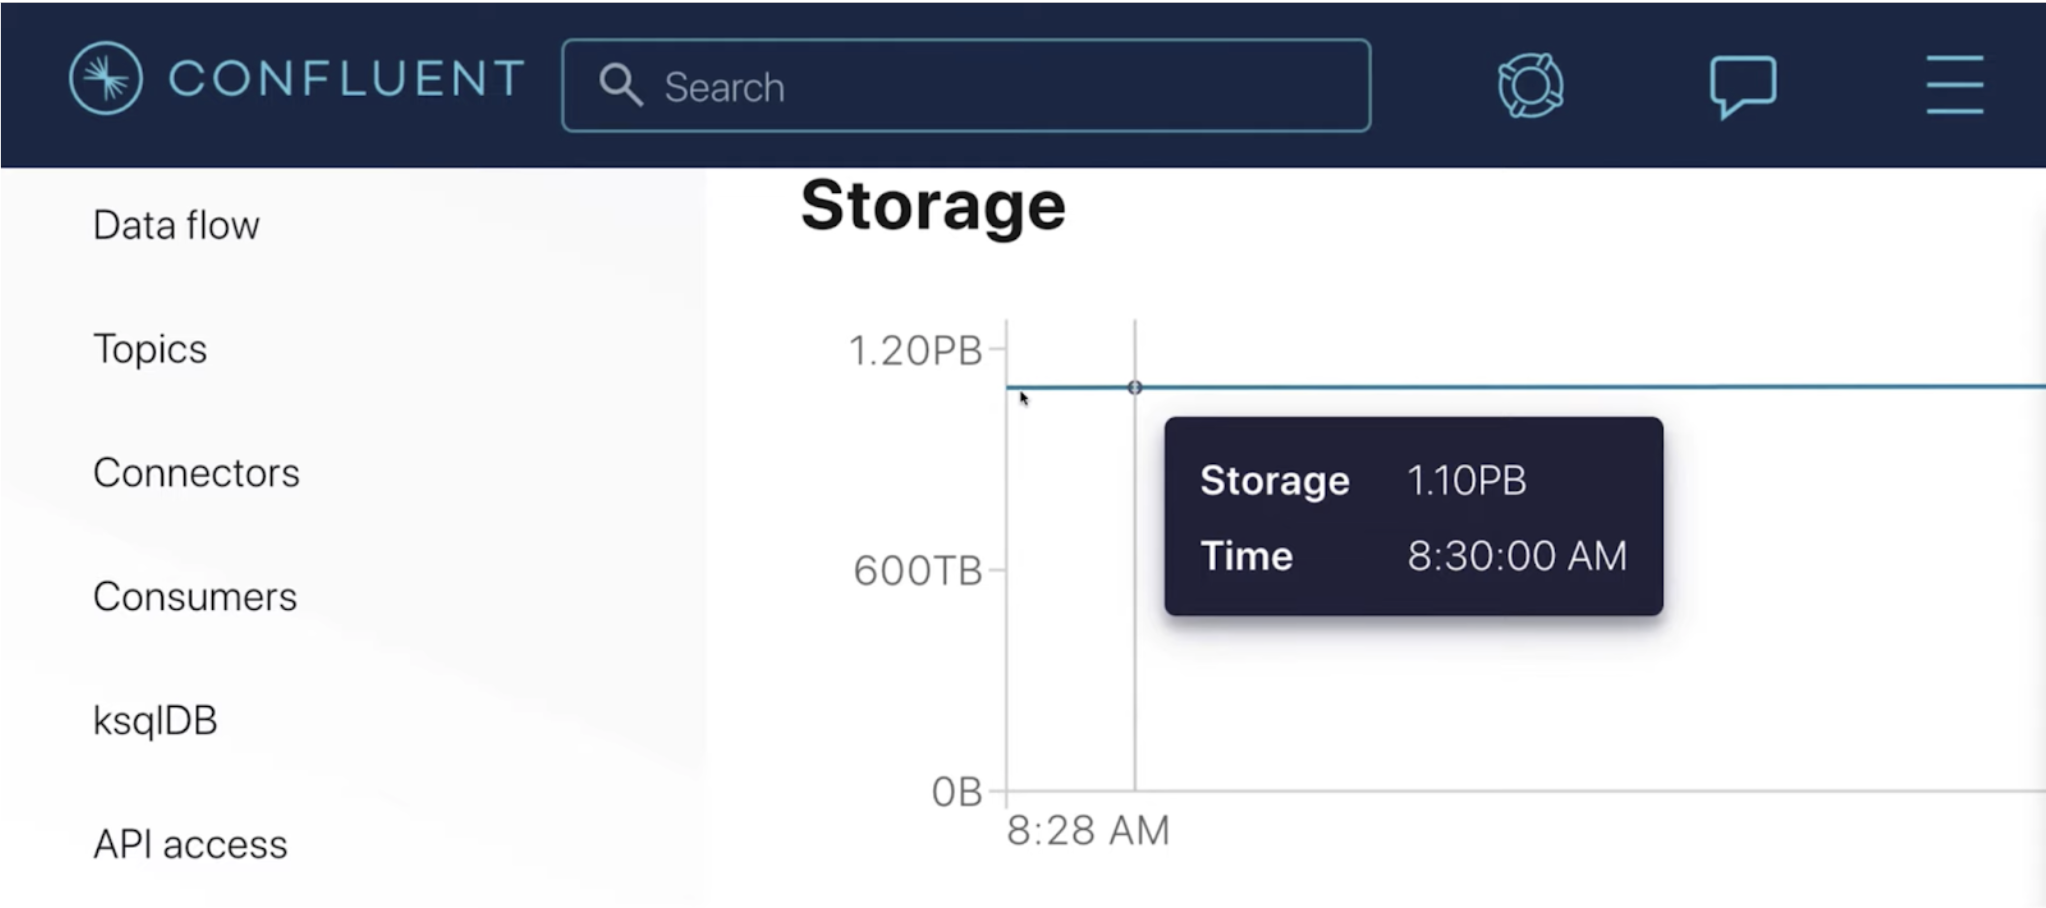 Infinite Storage enables you to elastically retain infinite volumes of data while only paying for the storage that you actually use.